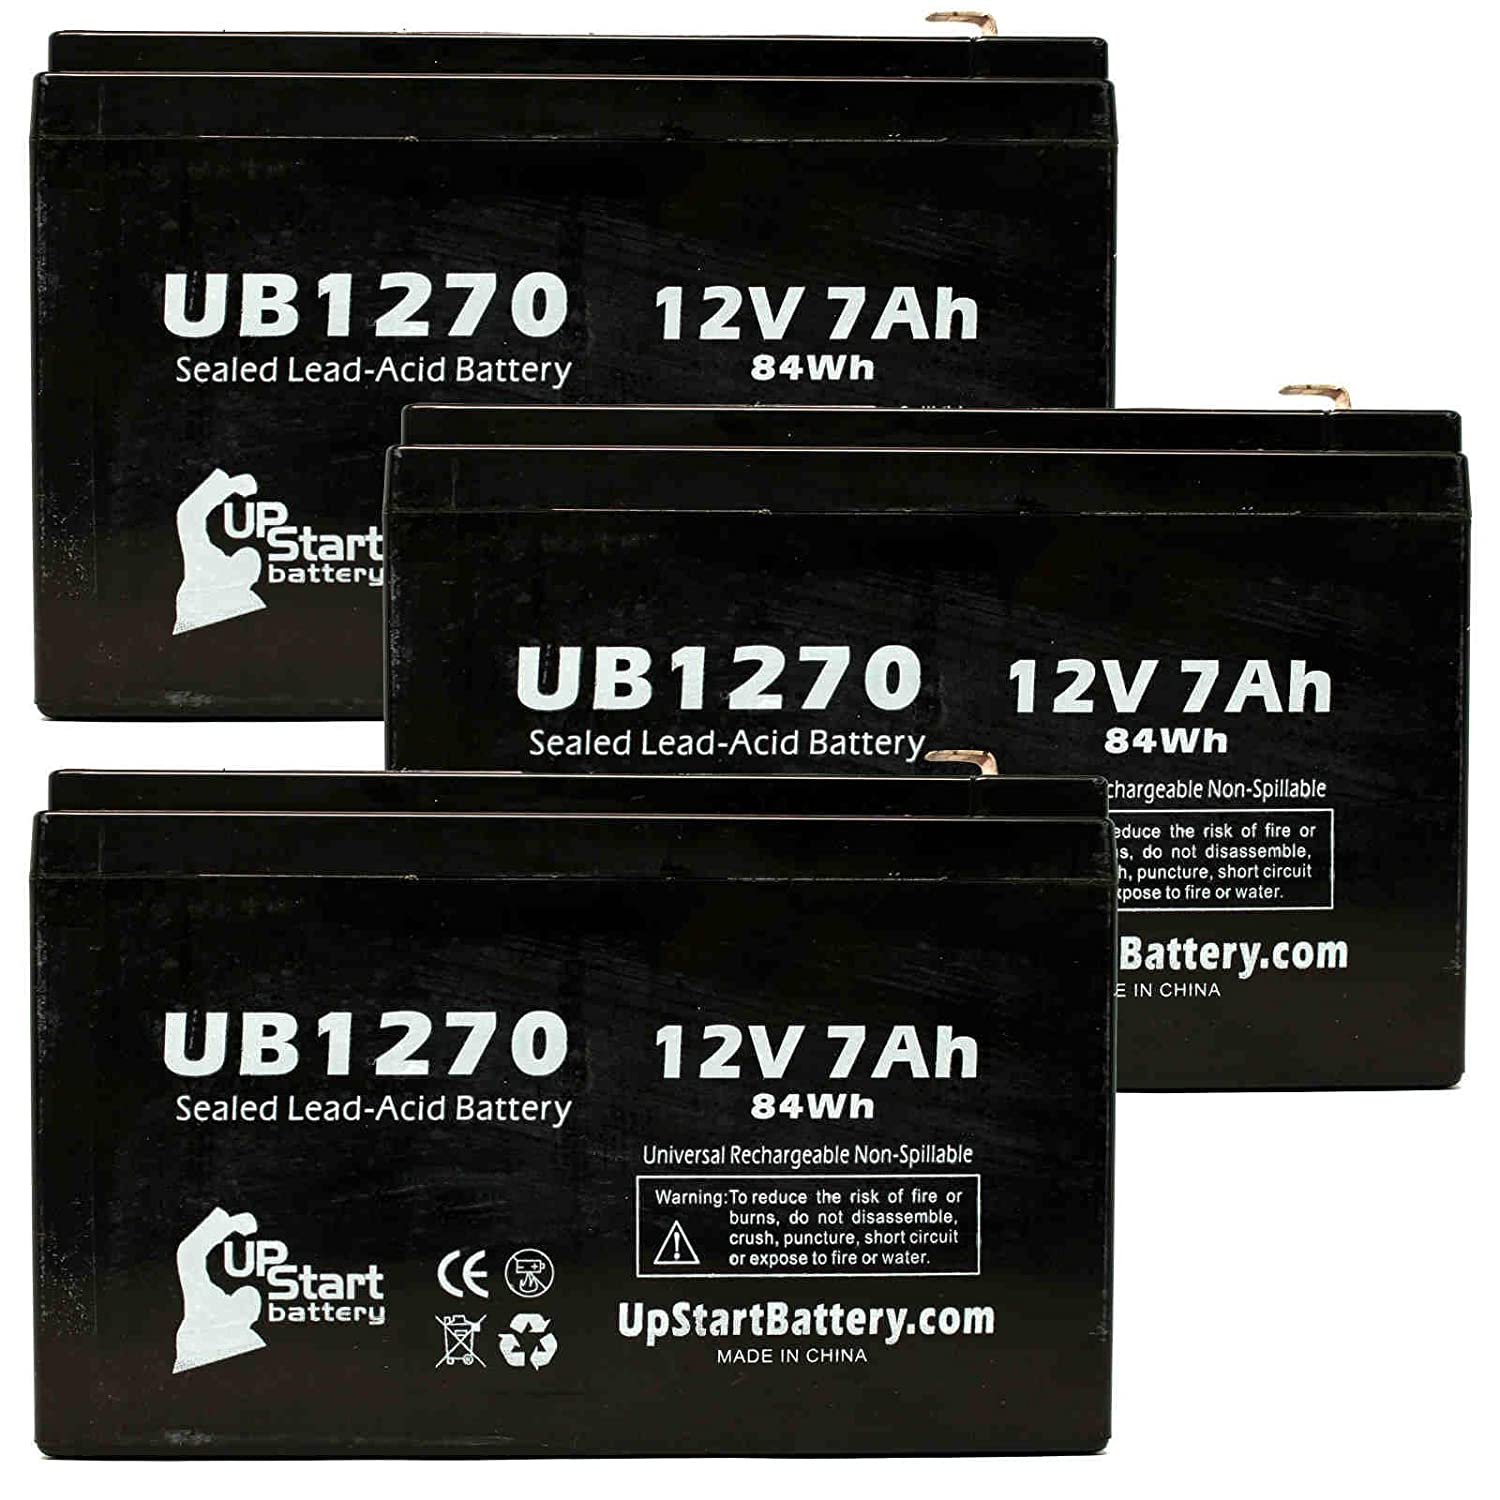 3x Pack - MK / East Penn ES7-12 Battery - Replacement UB1270 Universal Sealed Lead Acid Battery (12V, 7Ah, 7000mAh, F1 Terminal, AGM, SLA) - Includes 6 F1 to F2 Terminal Adapters